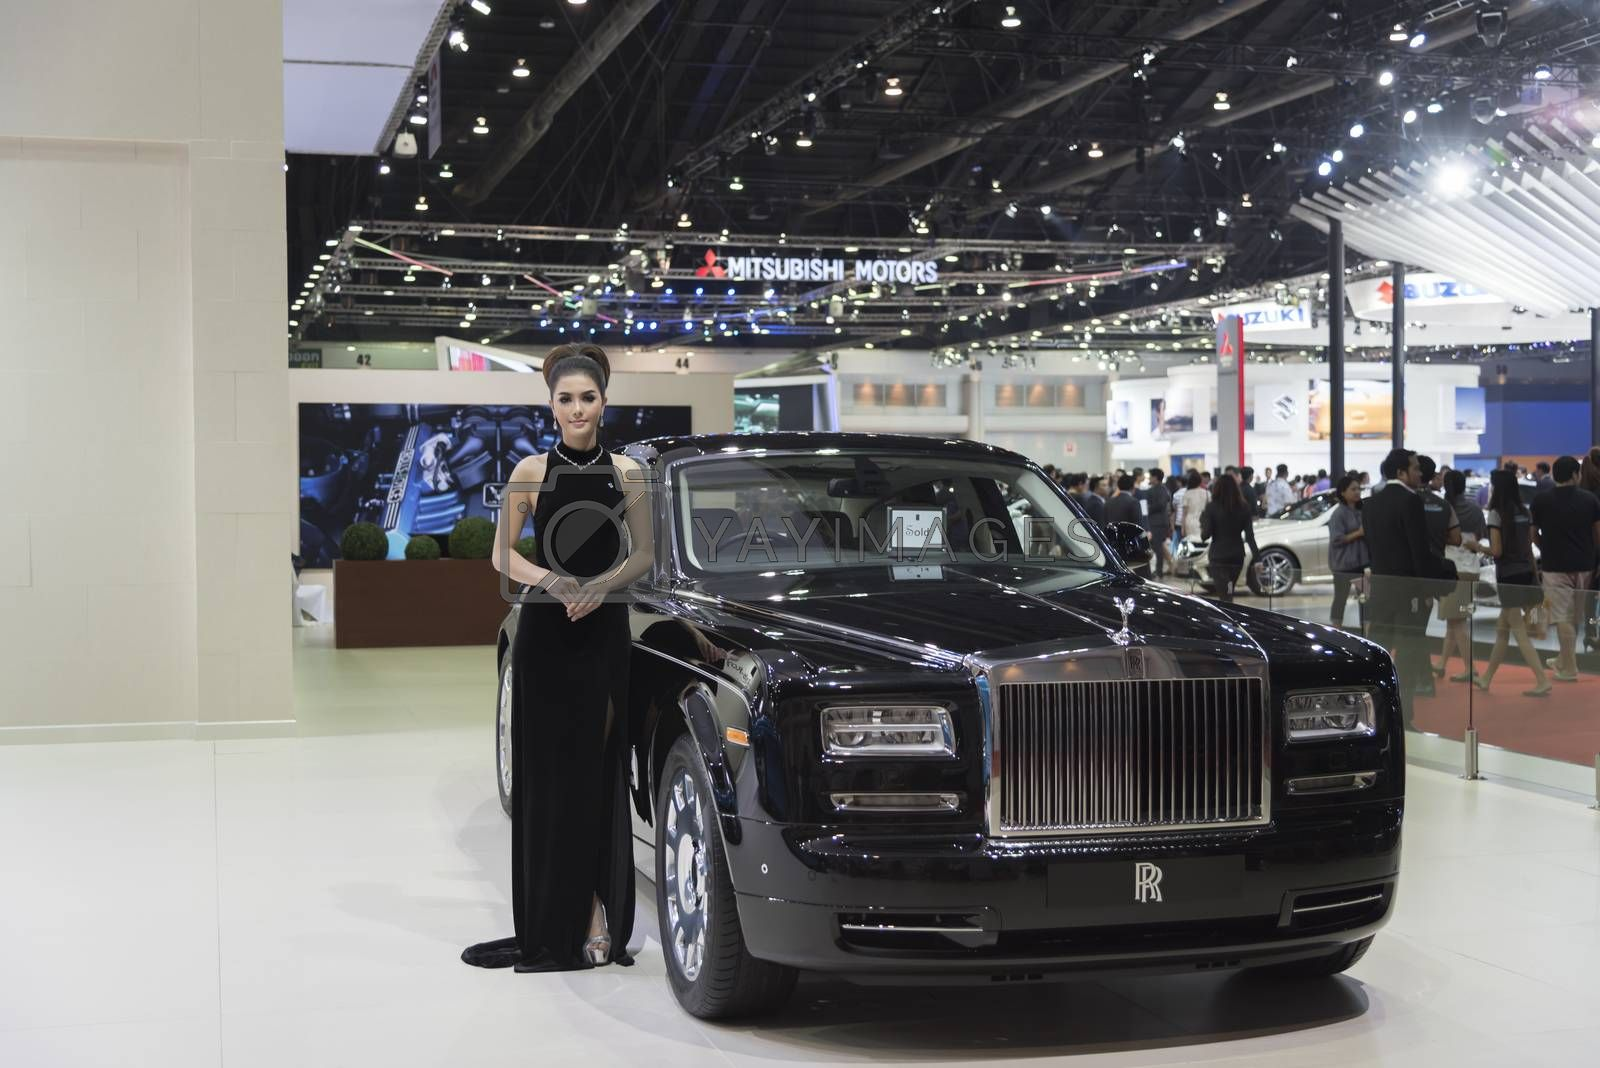 BANGKOK,THAILAND - APRIL 4 :New Classical car brand Rolls-Royce show on April 4,2015 at the 36th Bangkok international motor show in Thailand.Beautiful woman with classical car brand call Rolls-Royce.